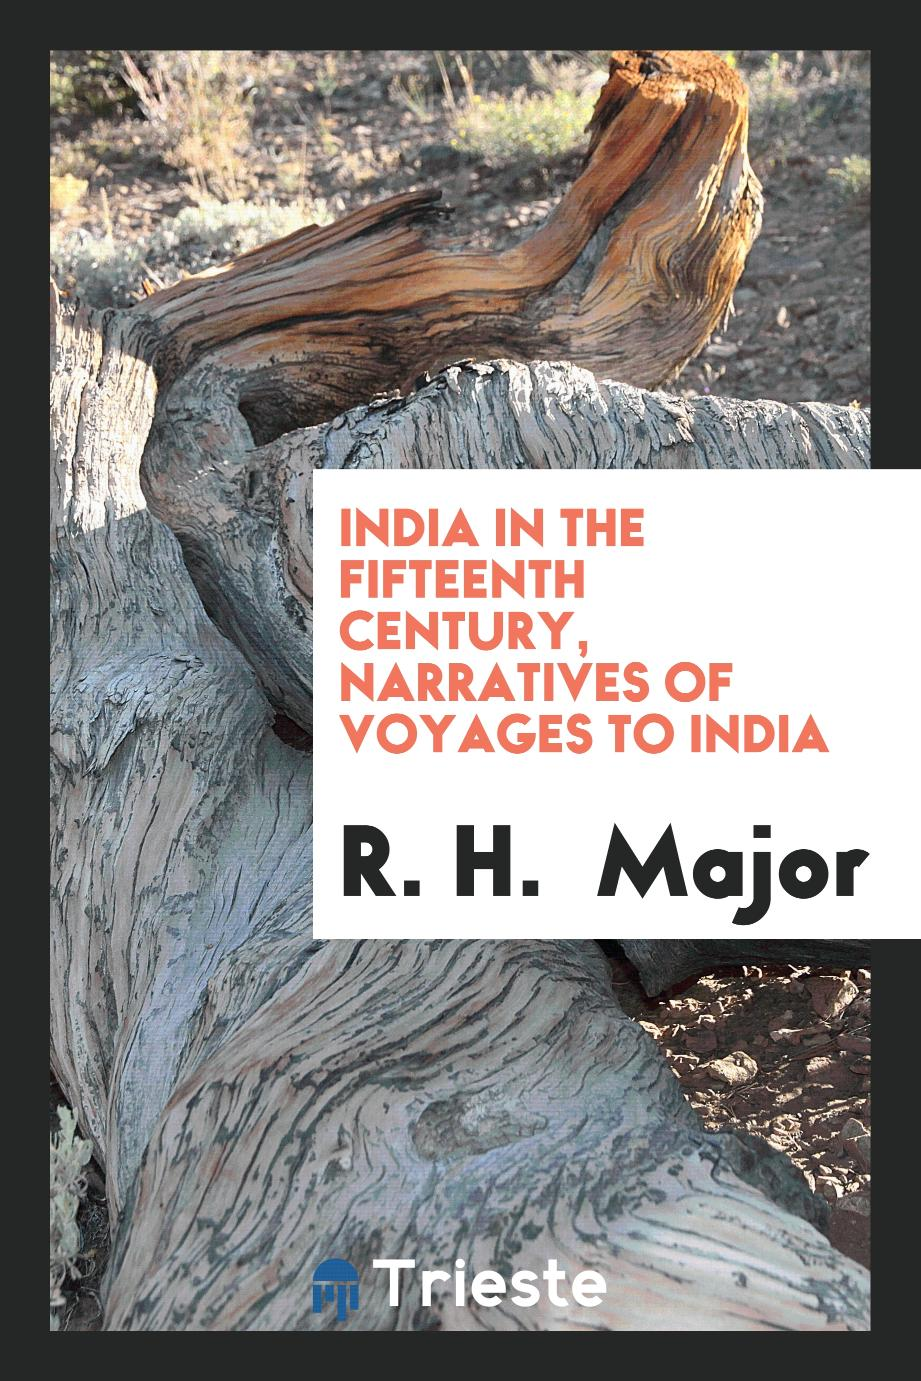 India in the fifteenth century, narratives of voyages to India